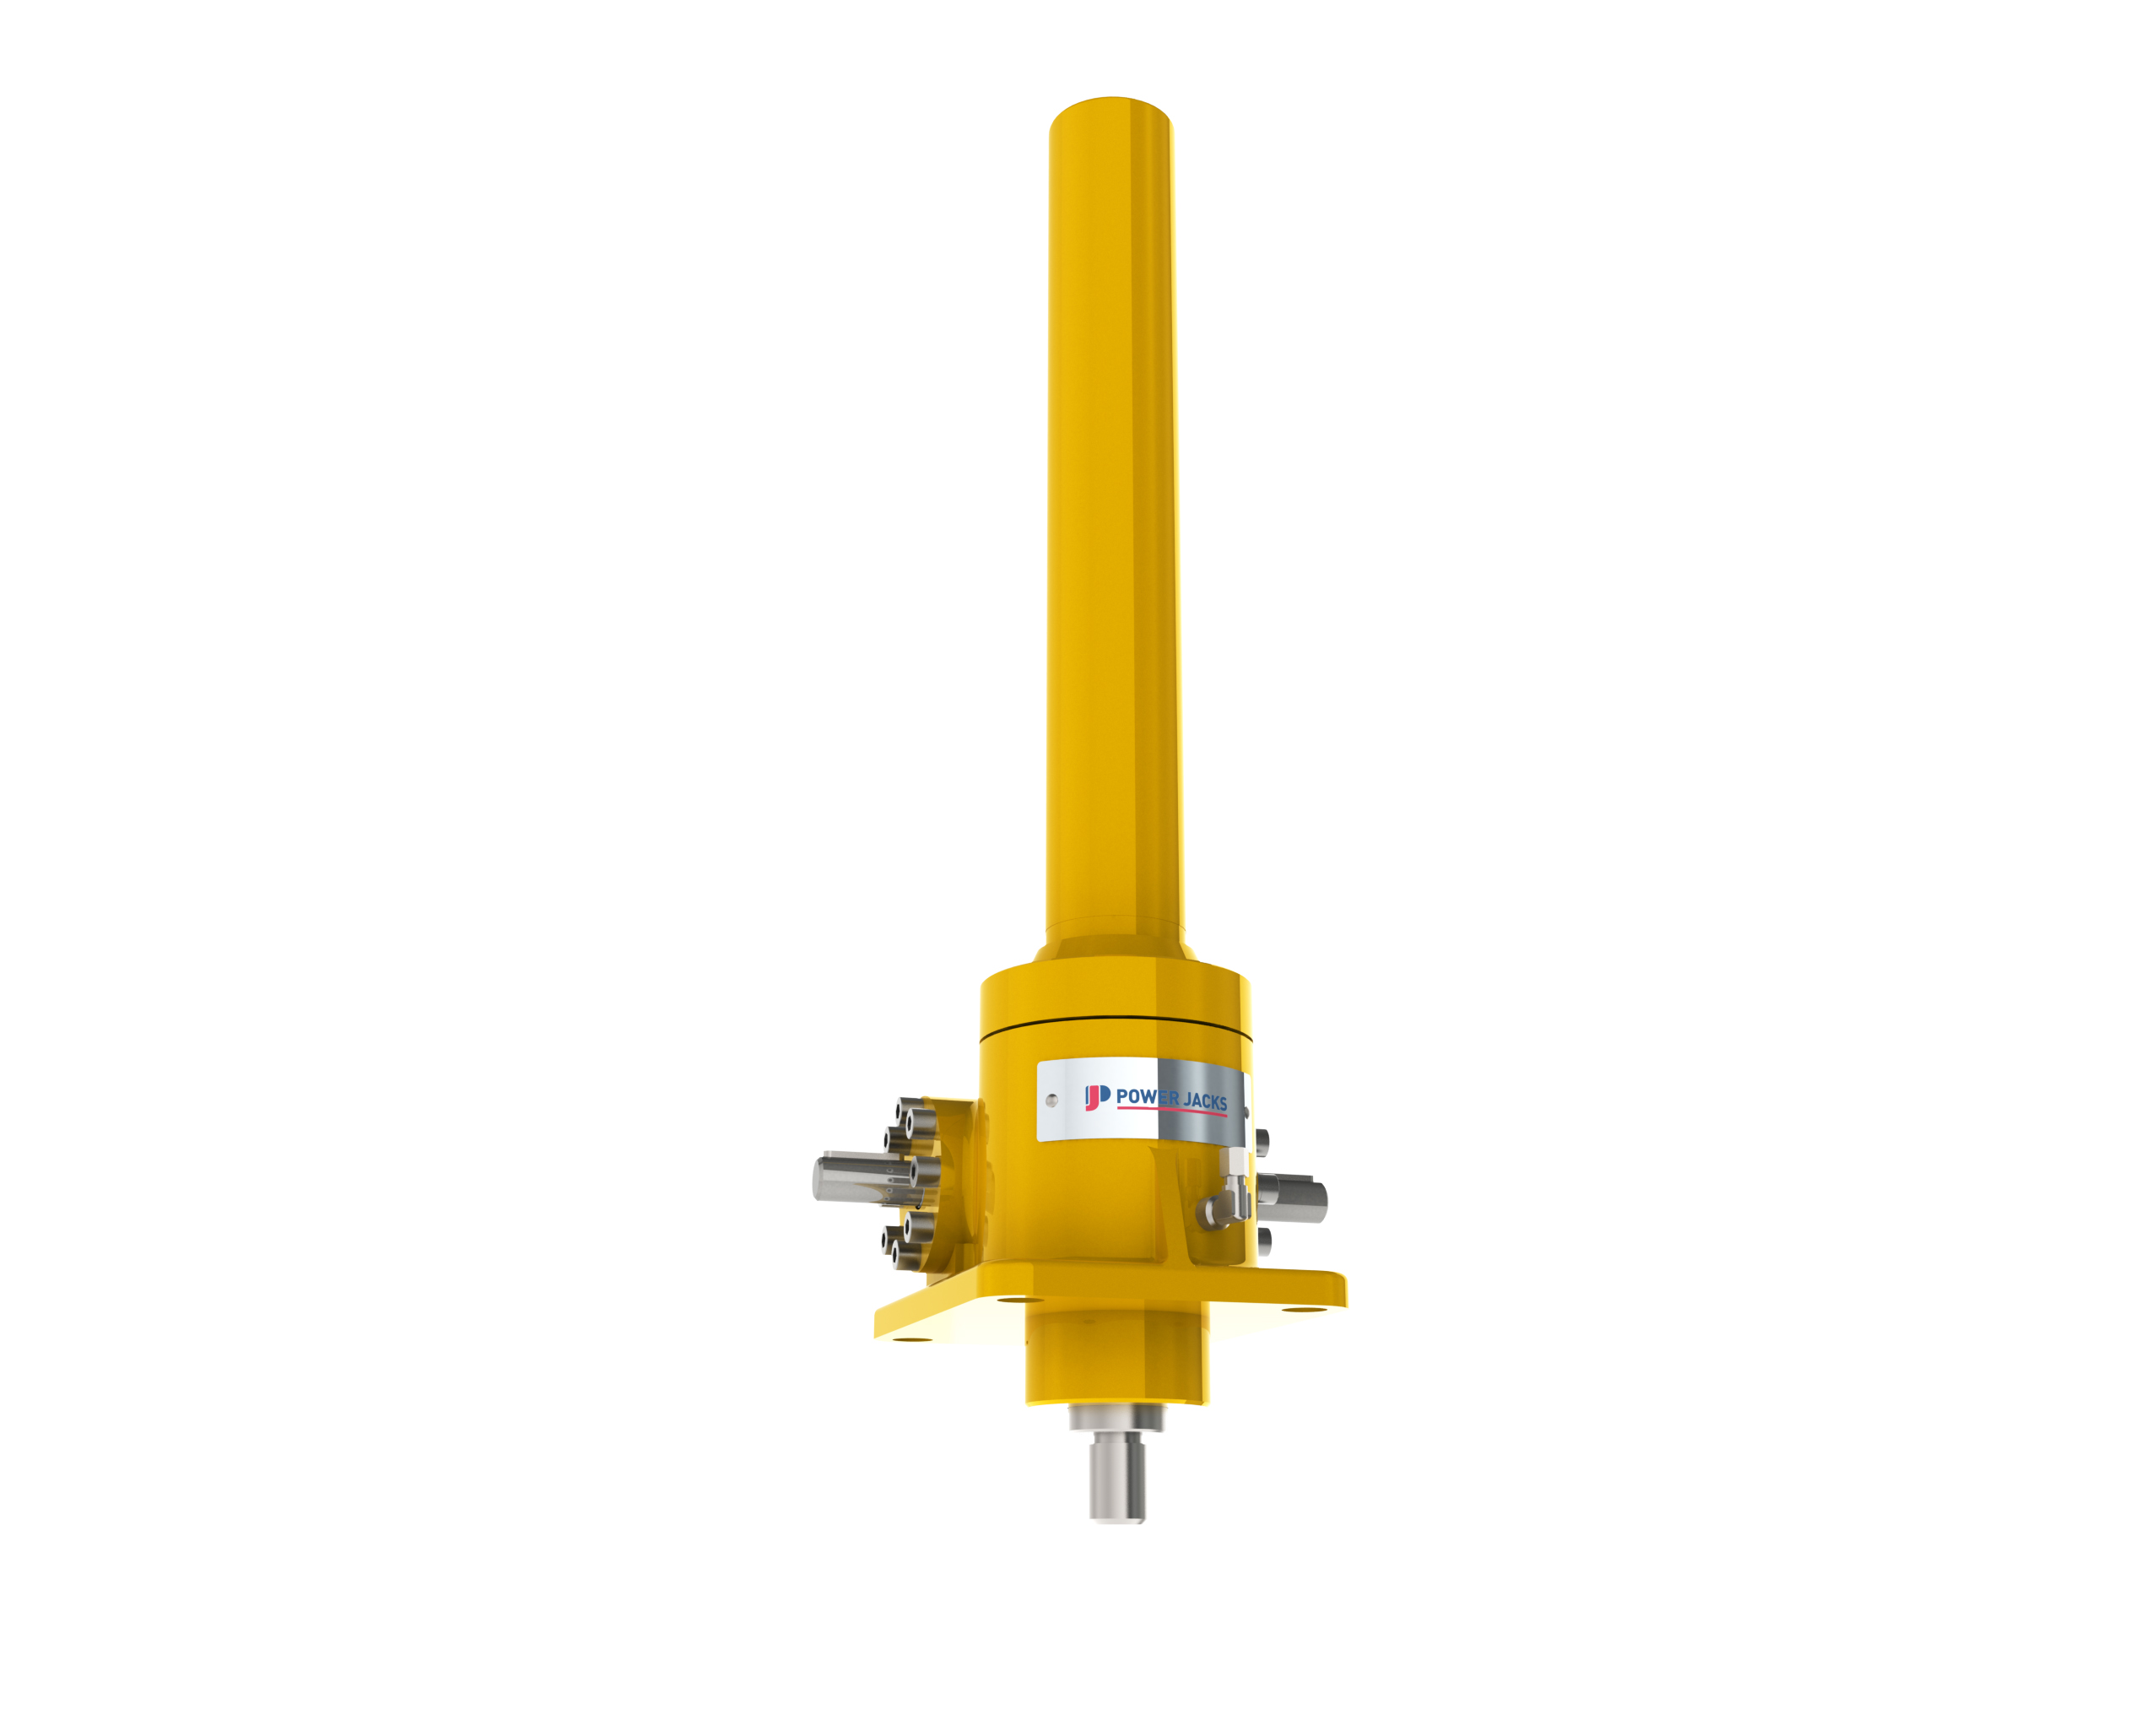 U-serie subsea producten van Power Jacks